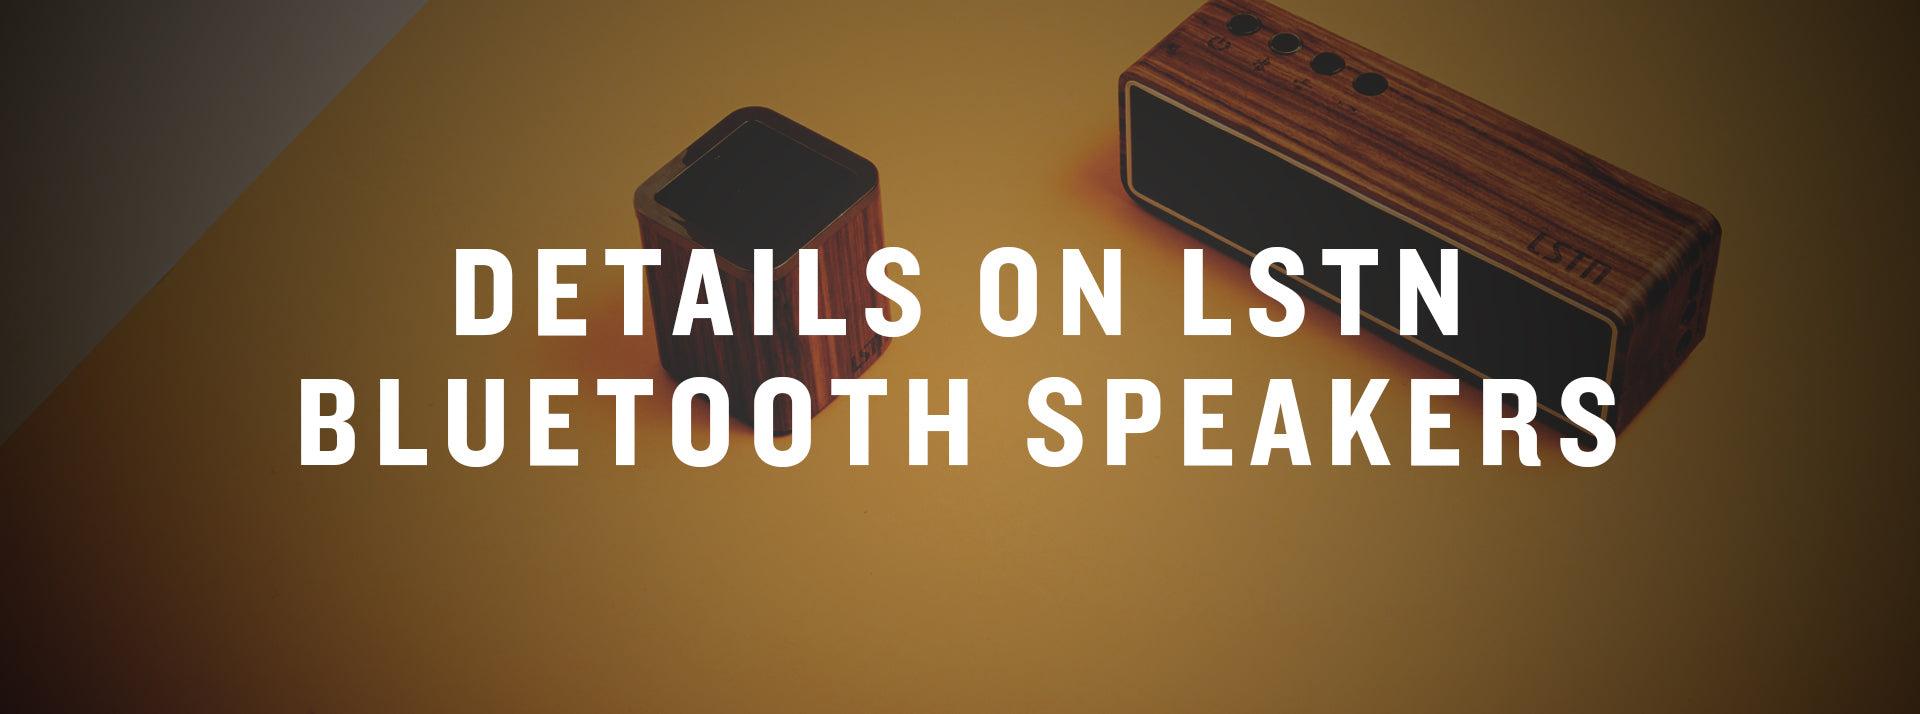 the story behind lstn bluetooth speakers